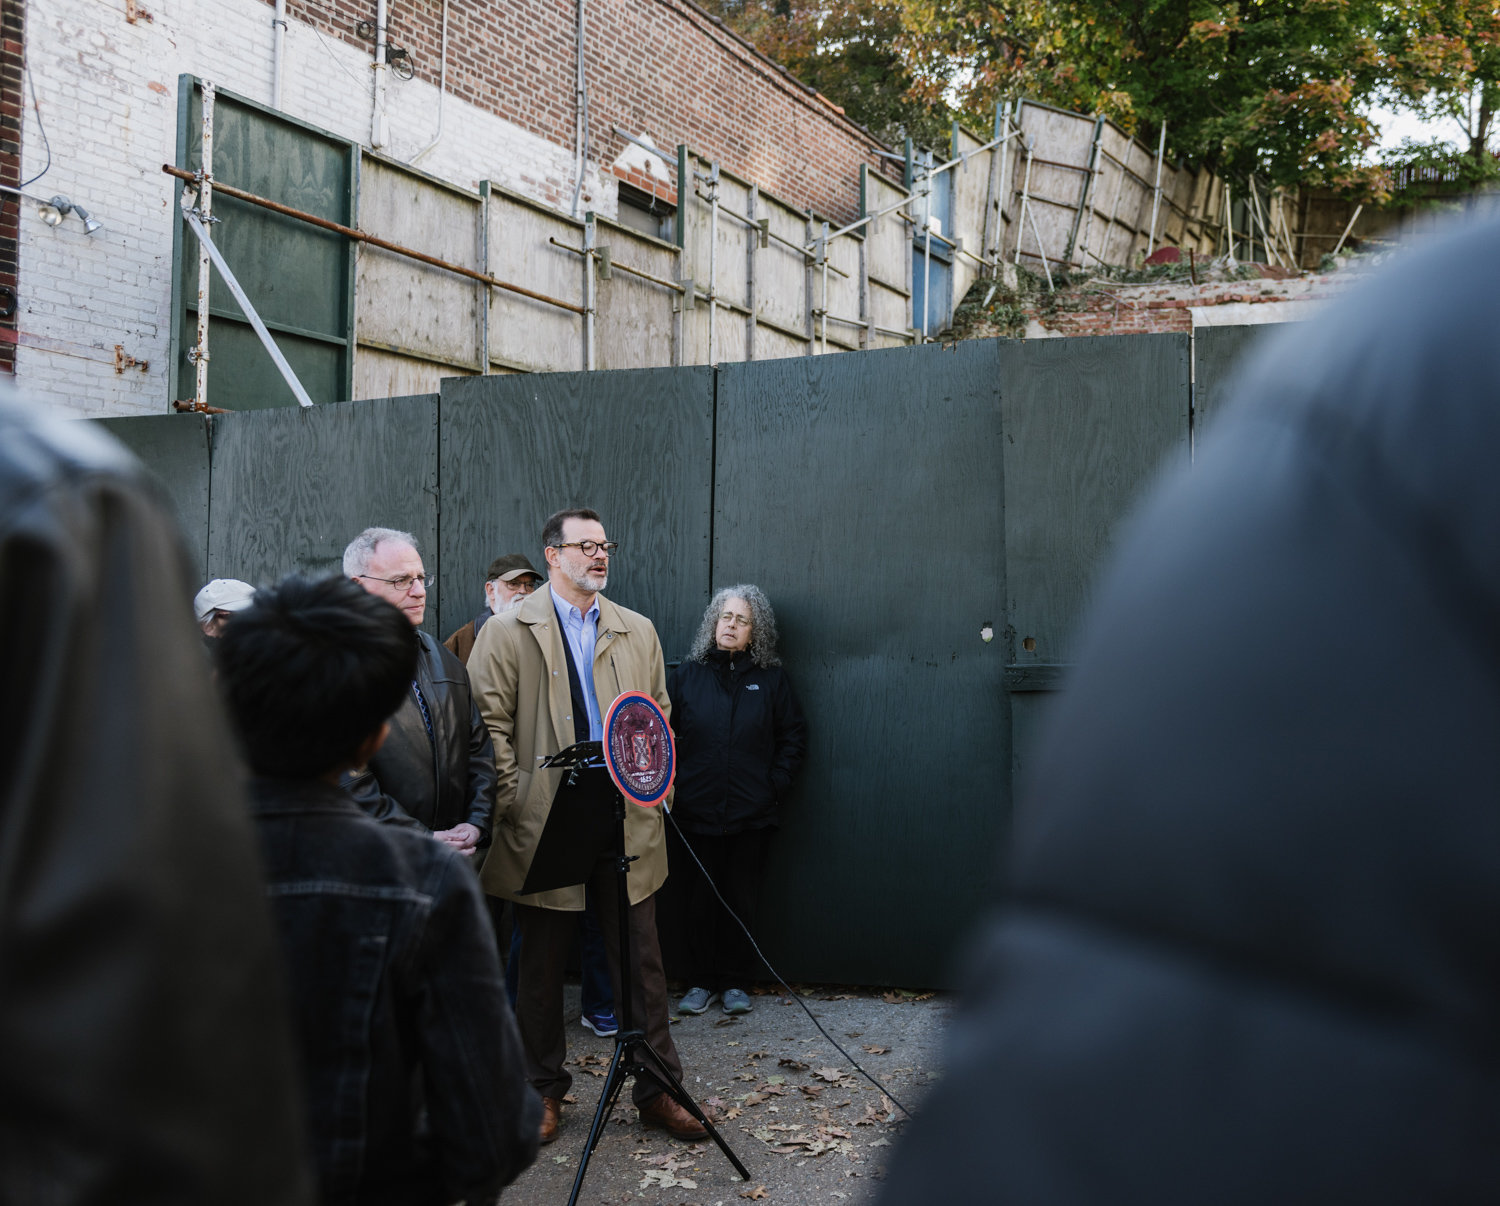 Councilman Andrew Cohen speaks against Montefiore Medical Center's reported plan to build a 10-story health care facility on the vacant lot at the intersection of West 238th Street and Riverdale Avenue.